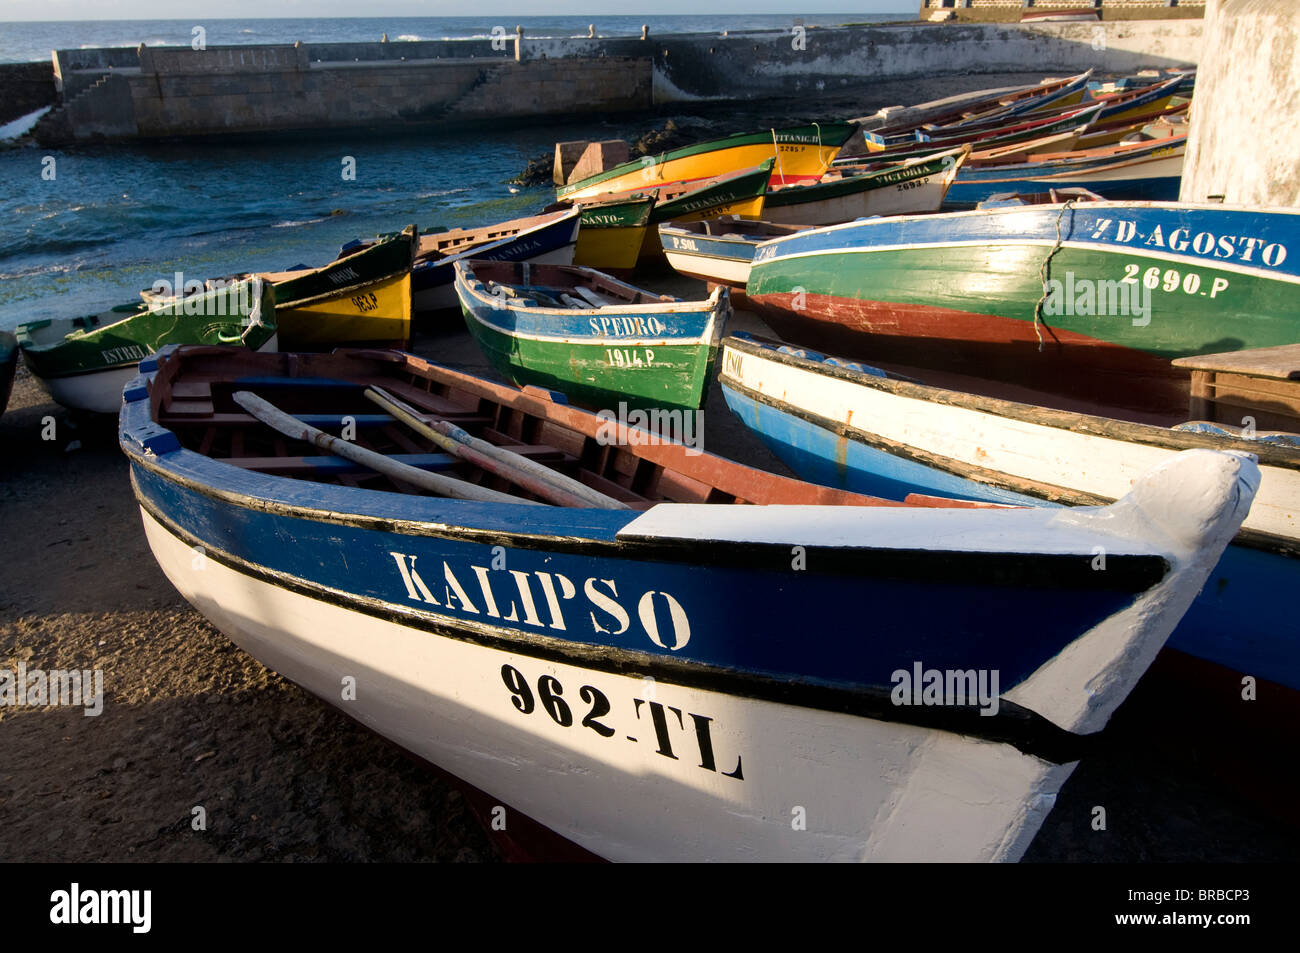 Wooden boats at the beach, Ponta do Sol, Santo Antao, Cape Verde - Stock Image